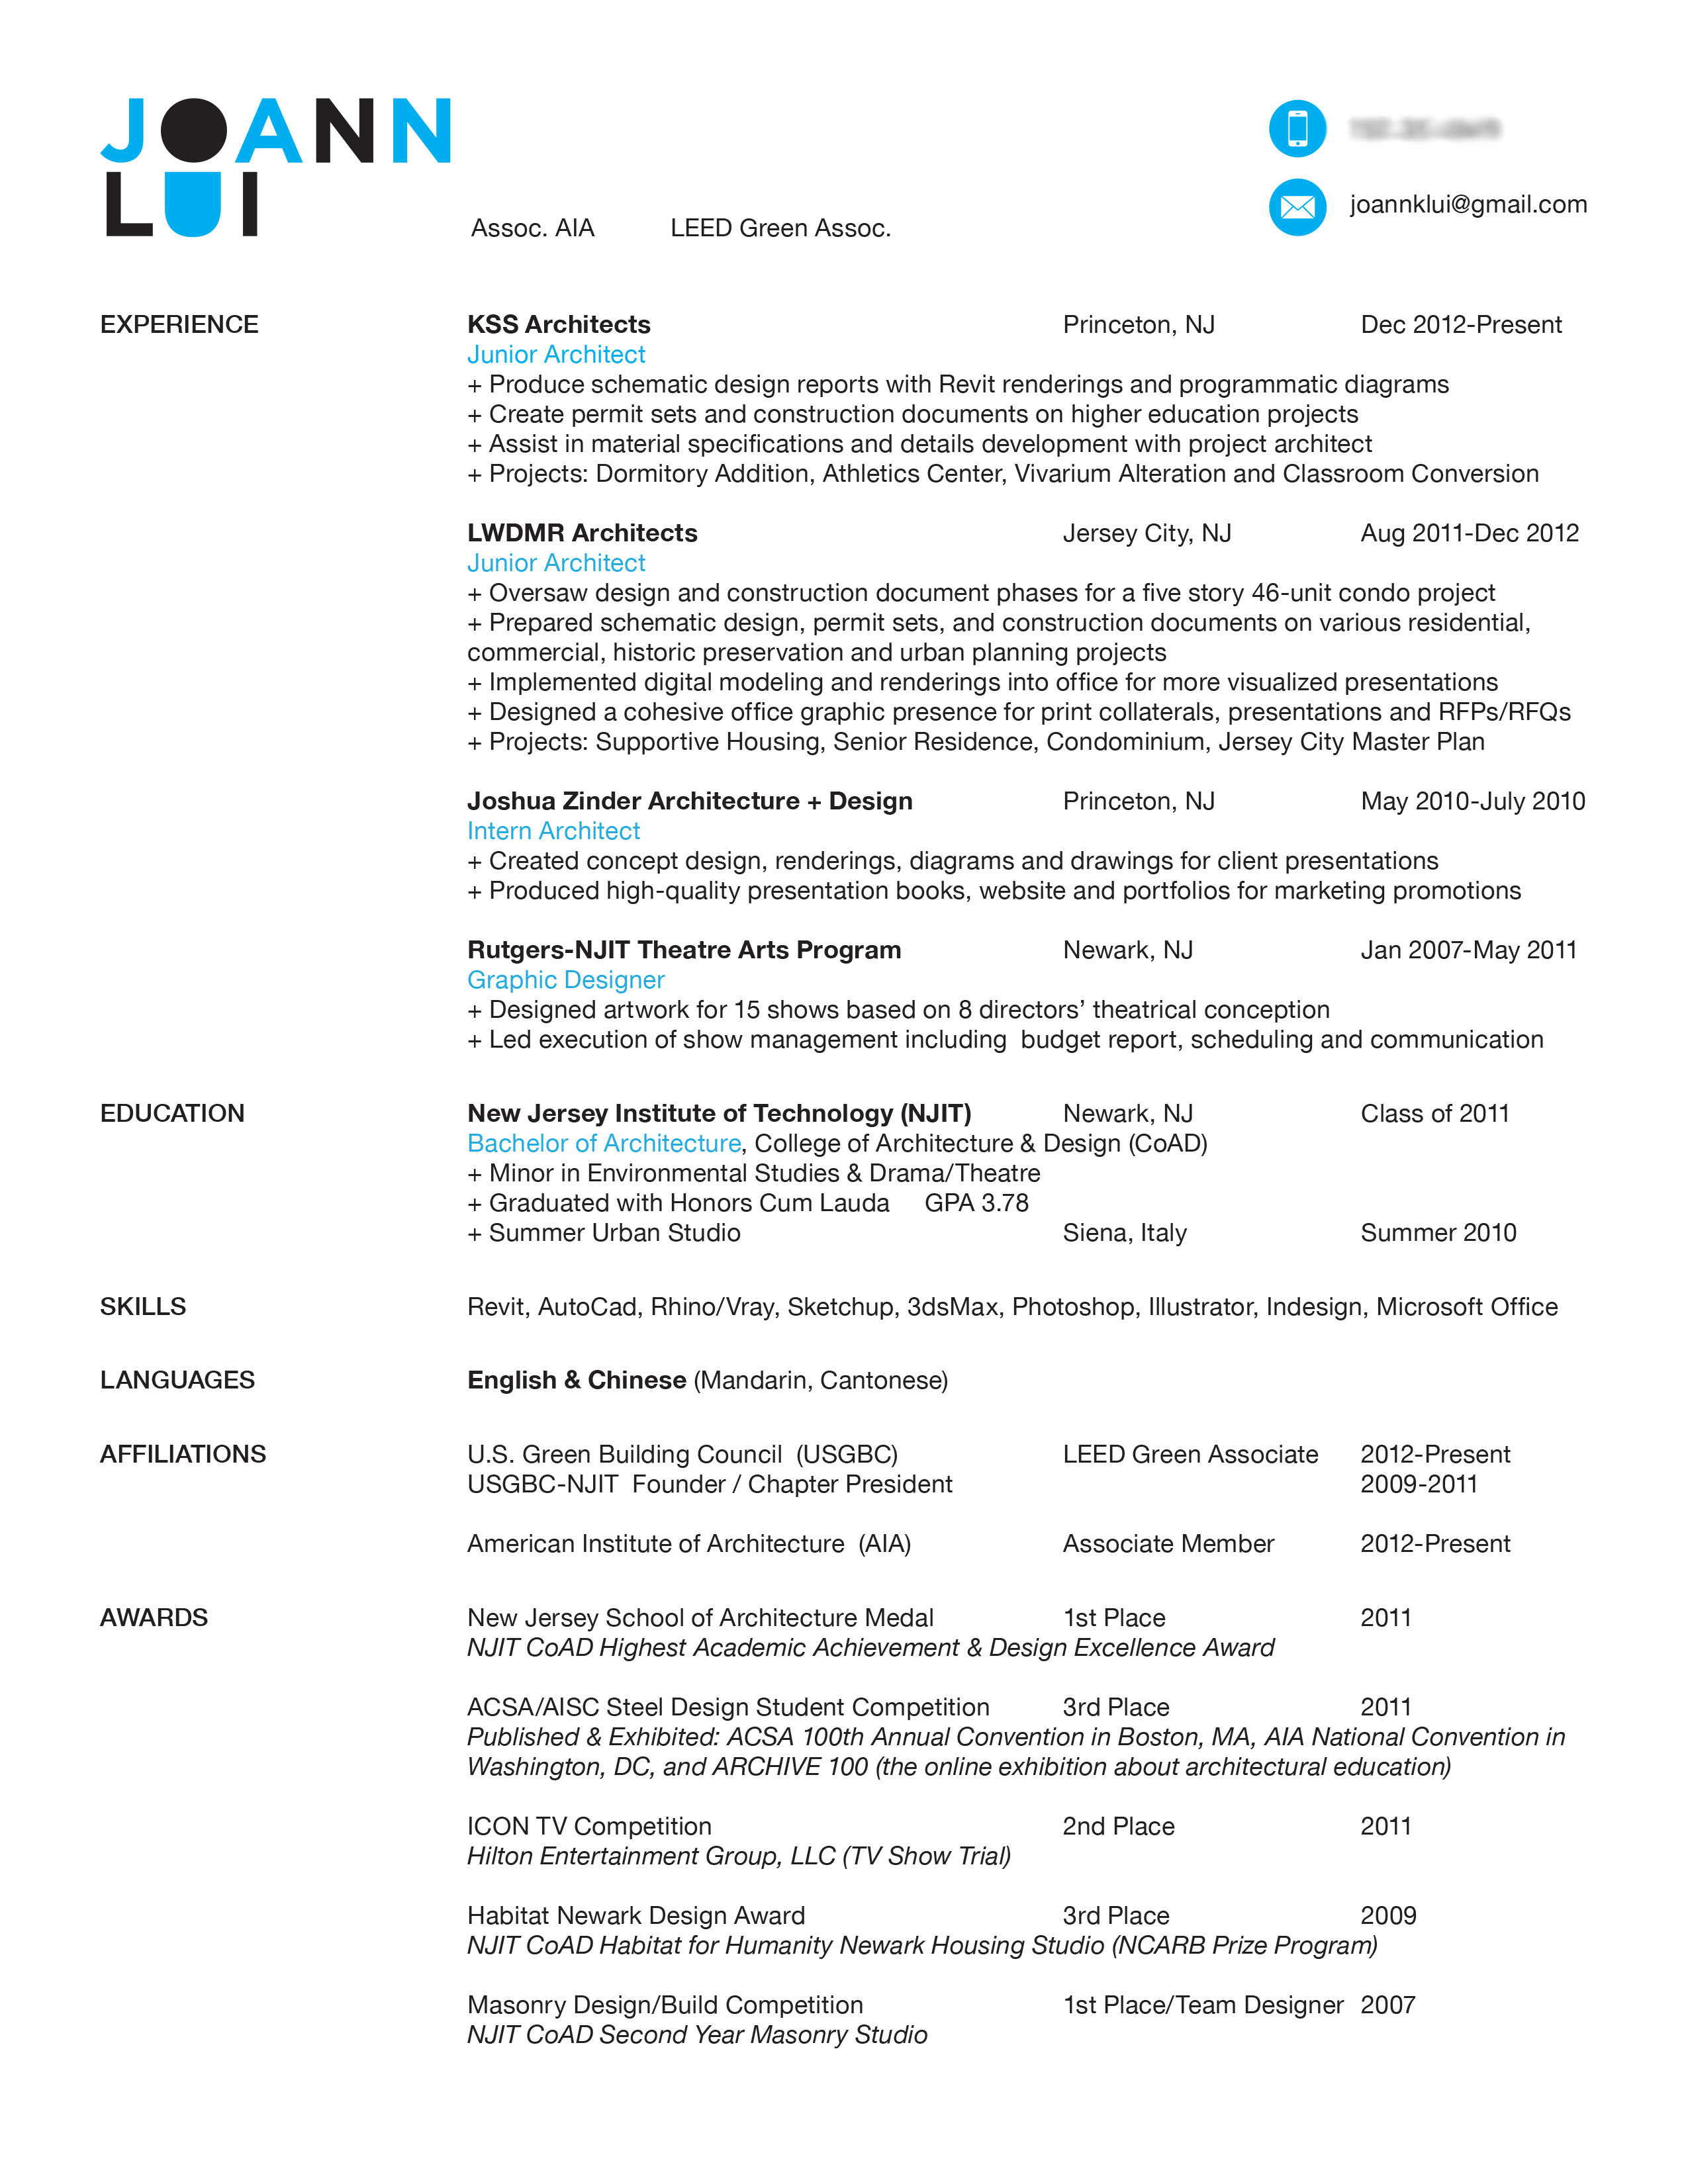 intern how to make an awesome resume archinect intern 101 how to make an awesome resume